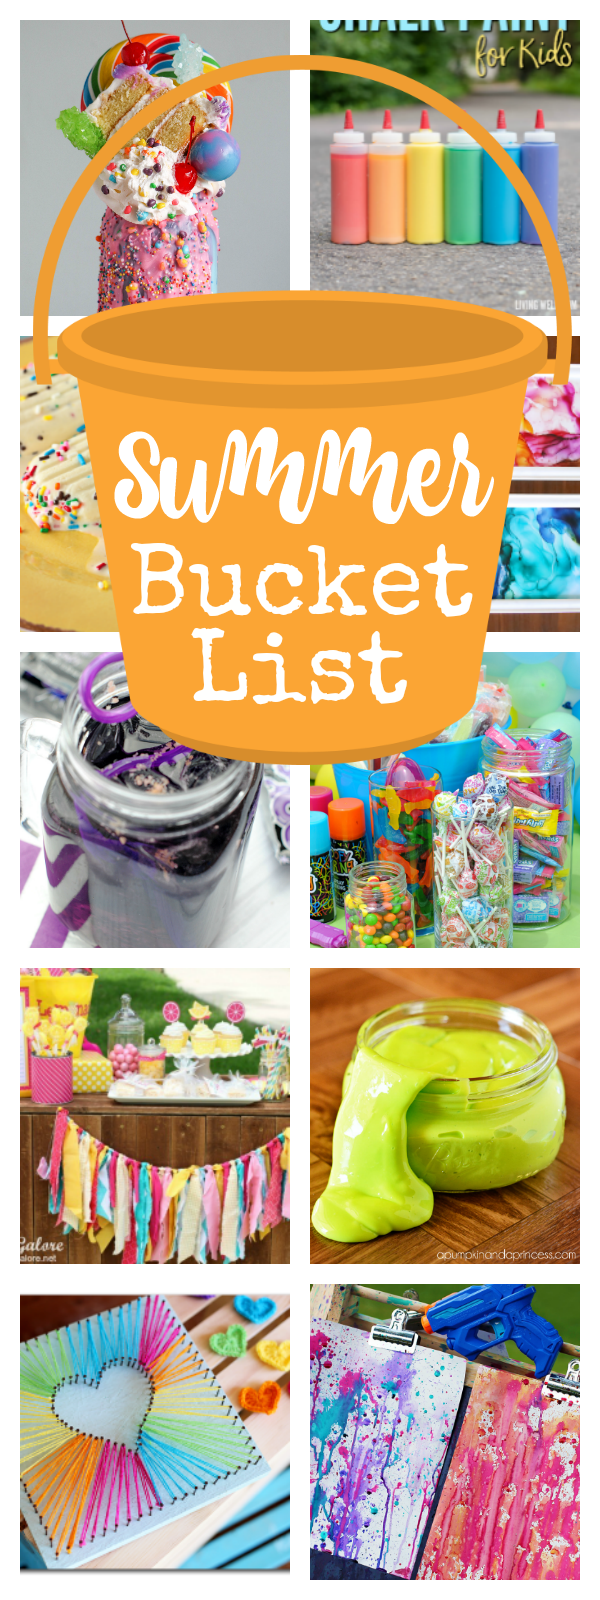 Summer Bucket List Ideas-25+ Fun Things to Do with Kids This Summer. Great summer activities for kids that will keep them happy and not bored! #summer #summerfun #kids #kidsactivities